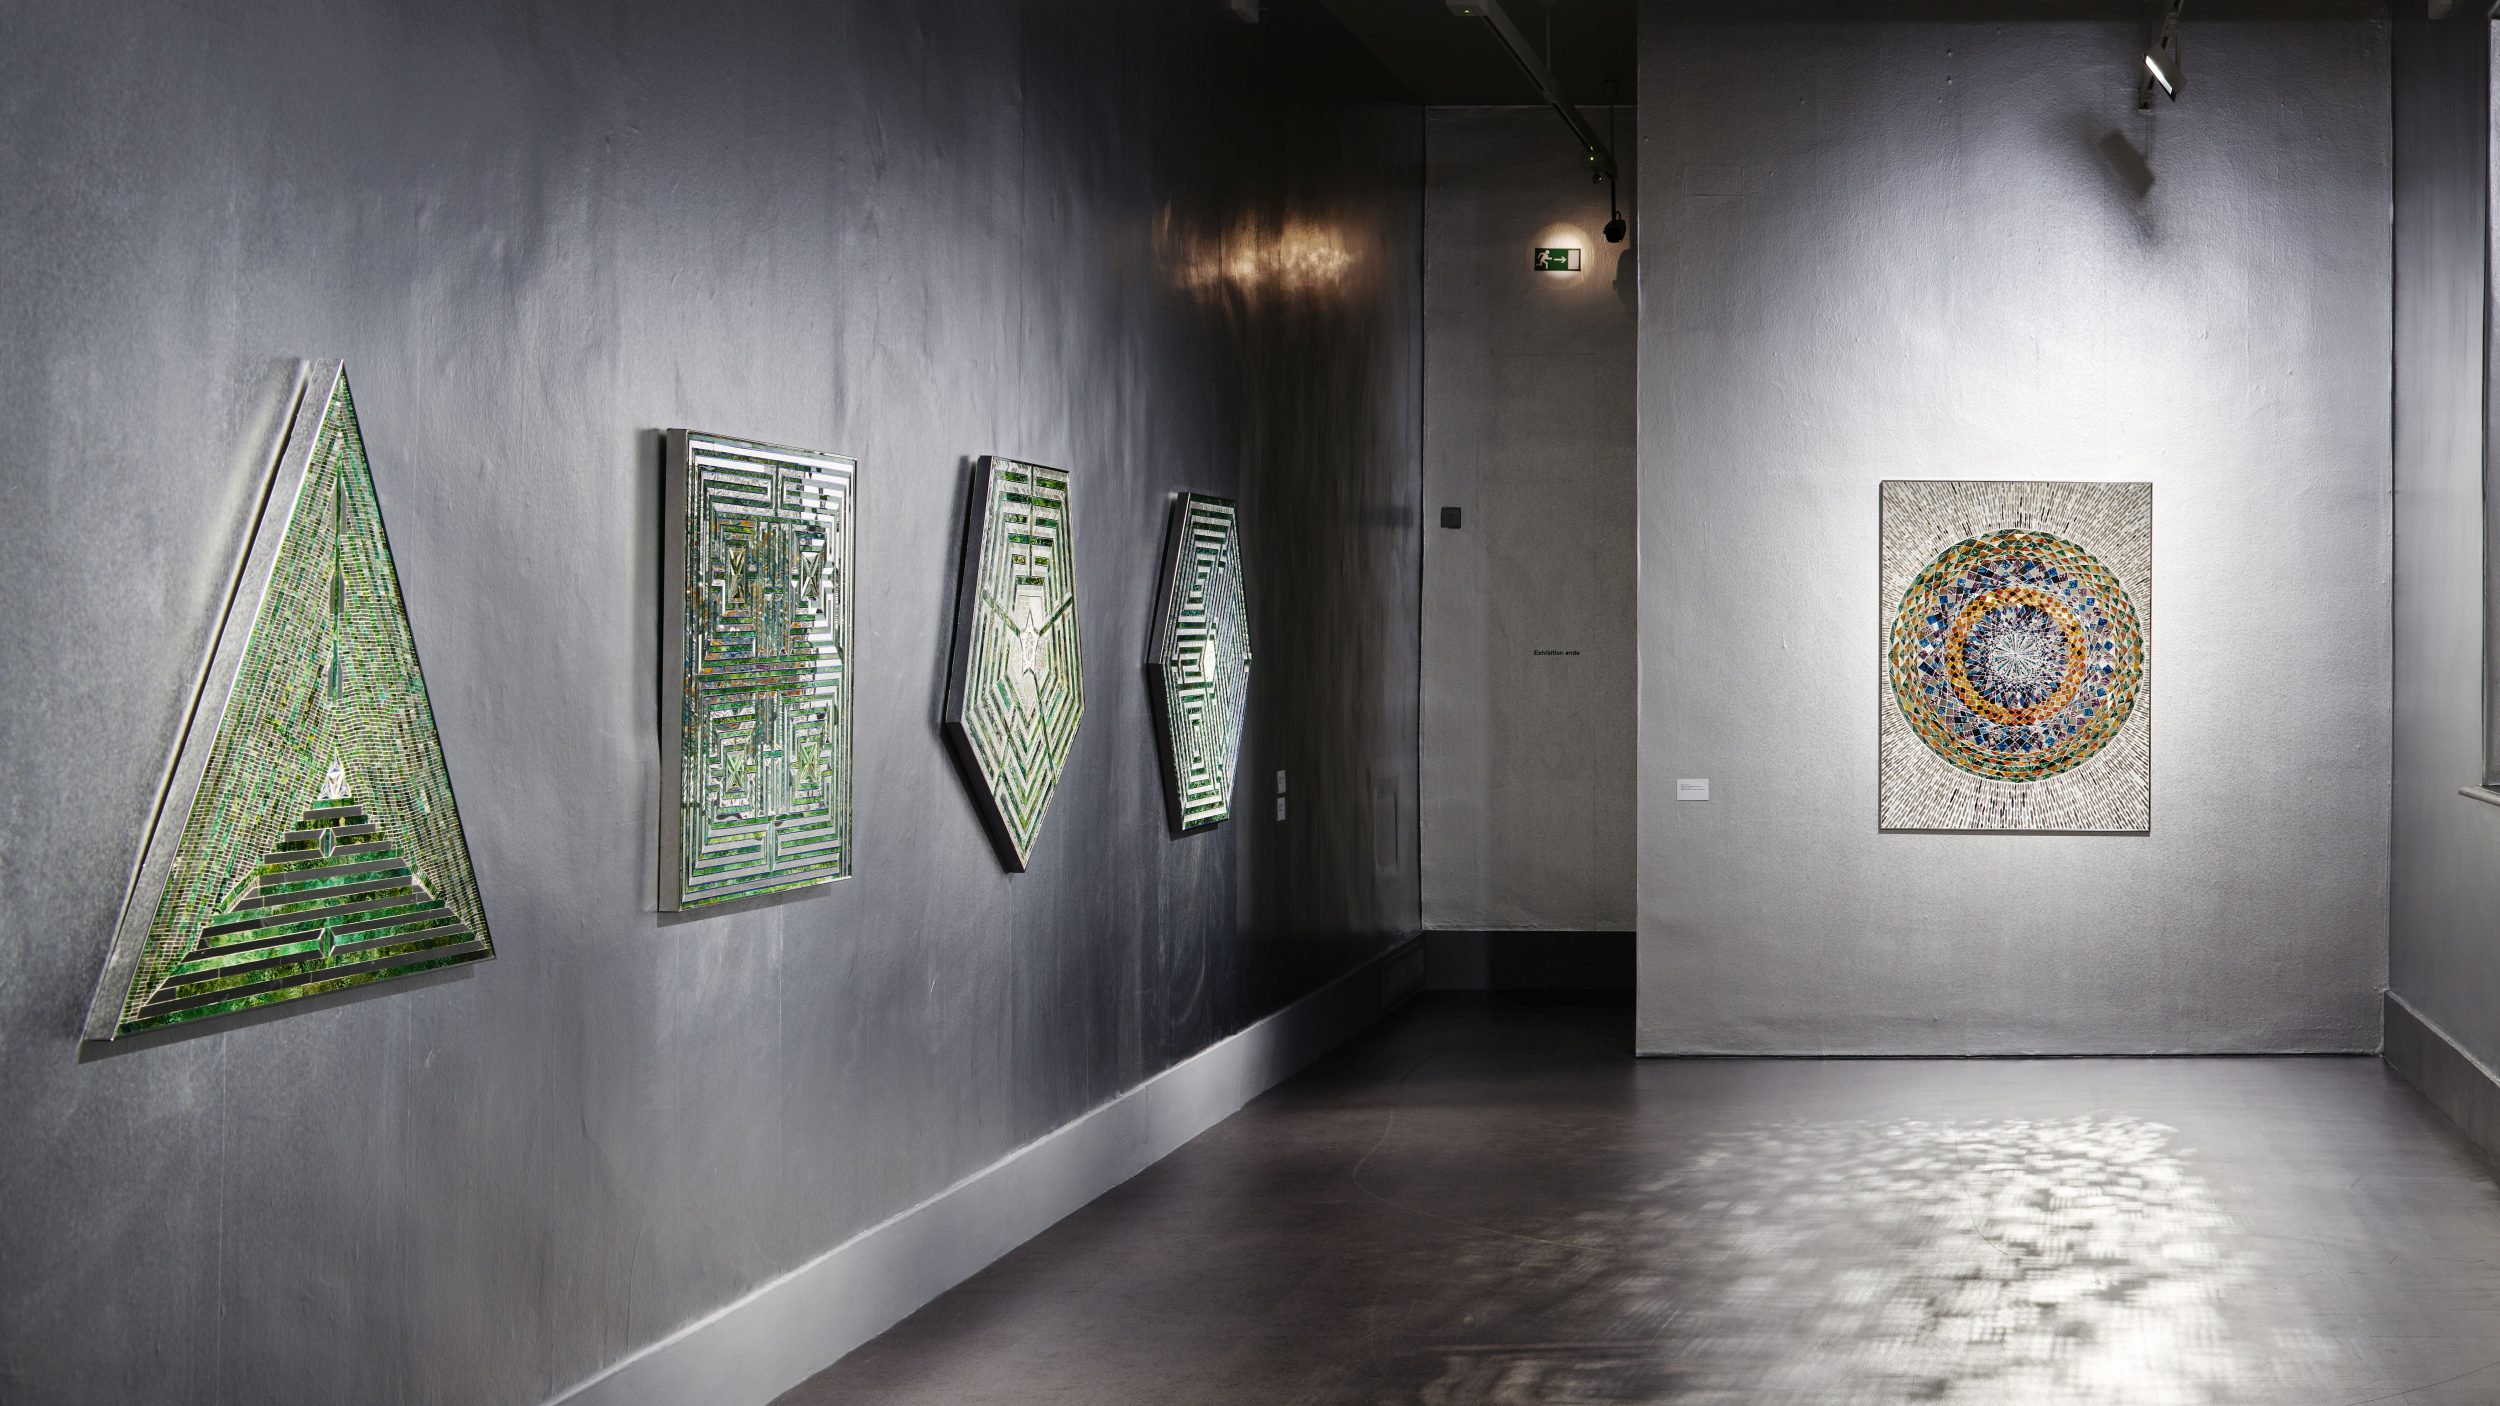 Installation view of 'Sunset, Sunrise' by Monir Shahroudy Farmanfarmaian. IMMA. Dublin. 10 August - 25 November 2018. Photo: Ros Kavanagh